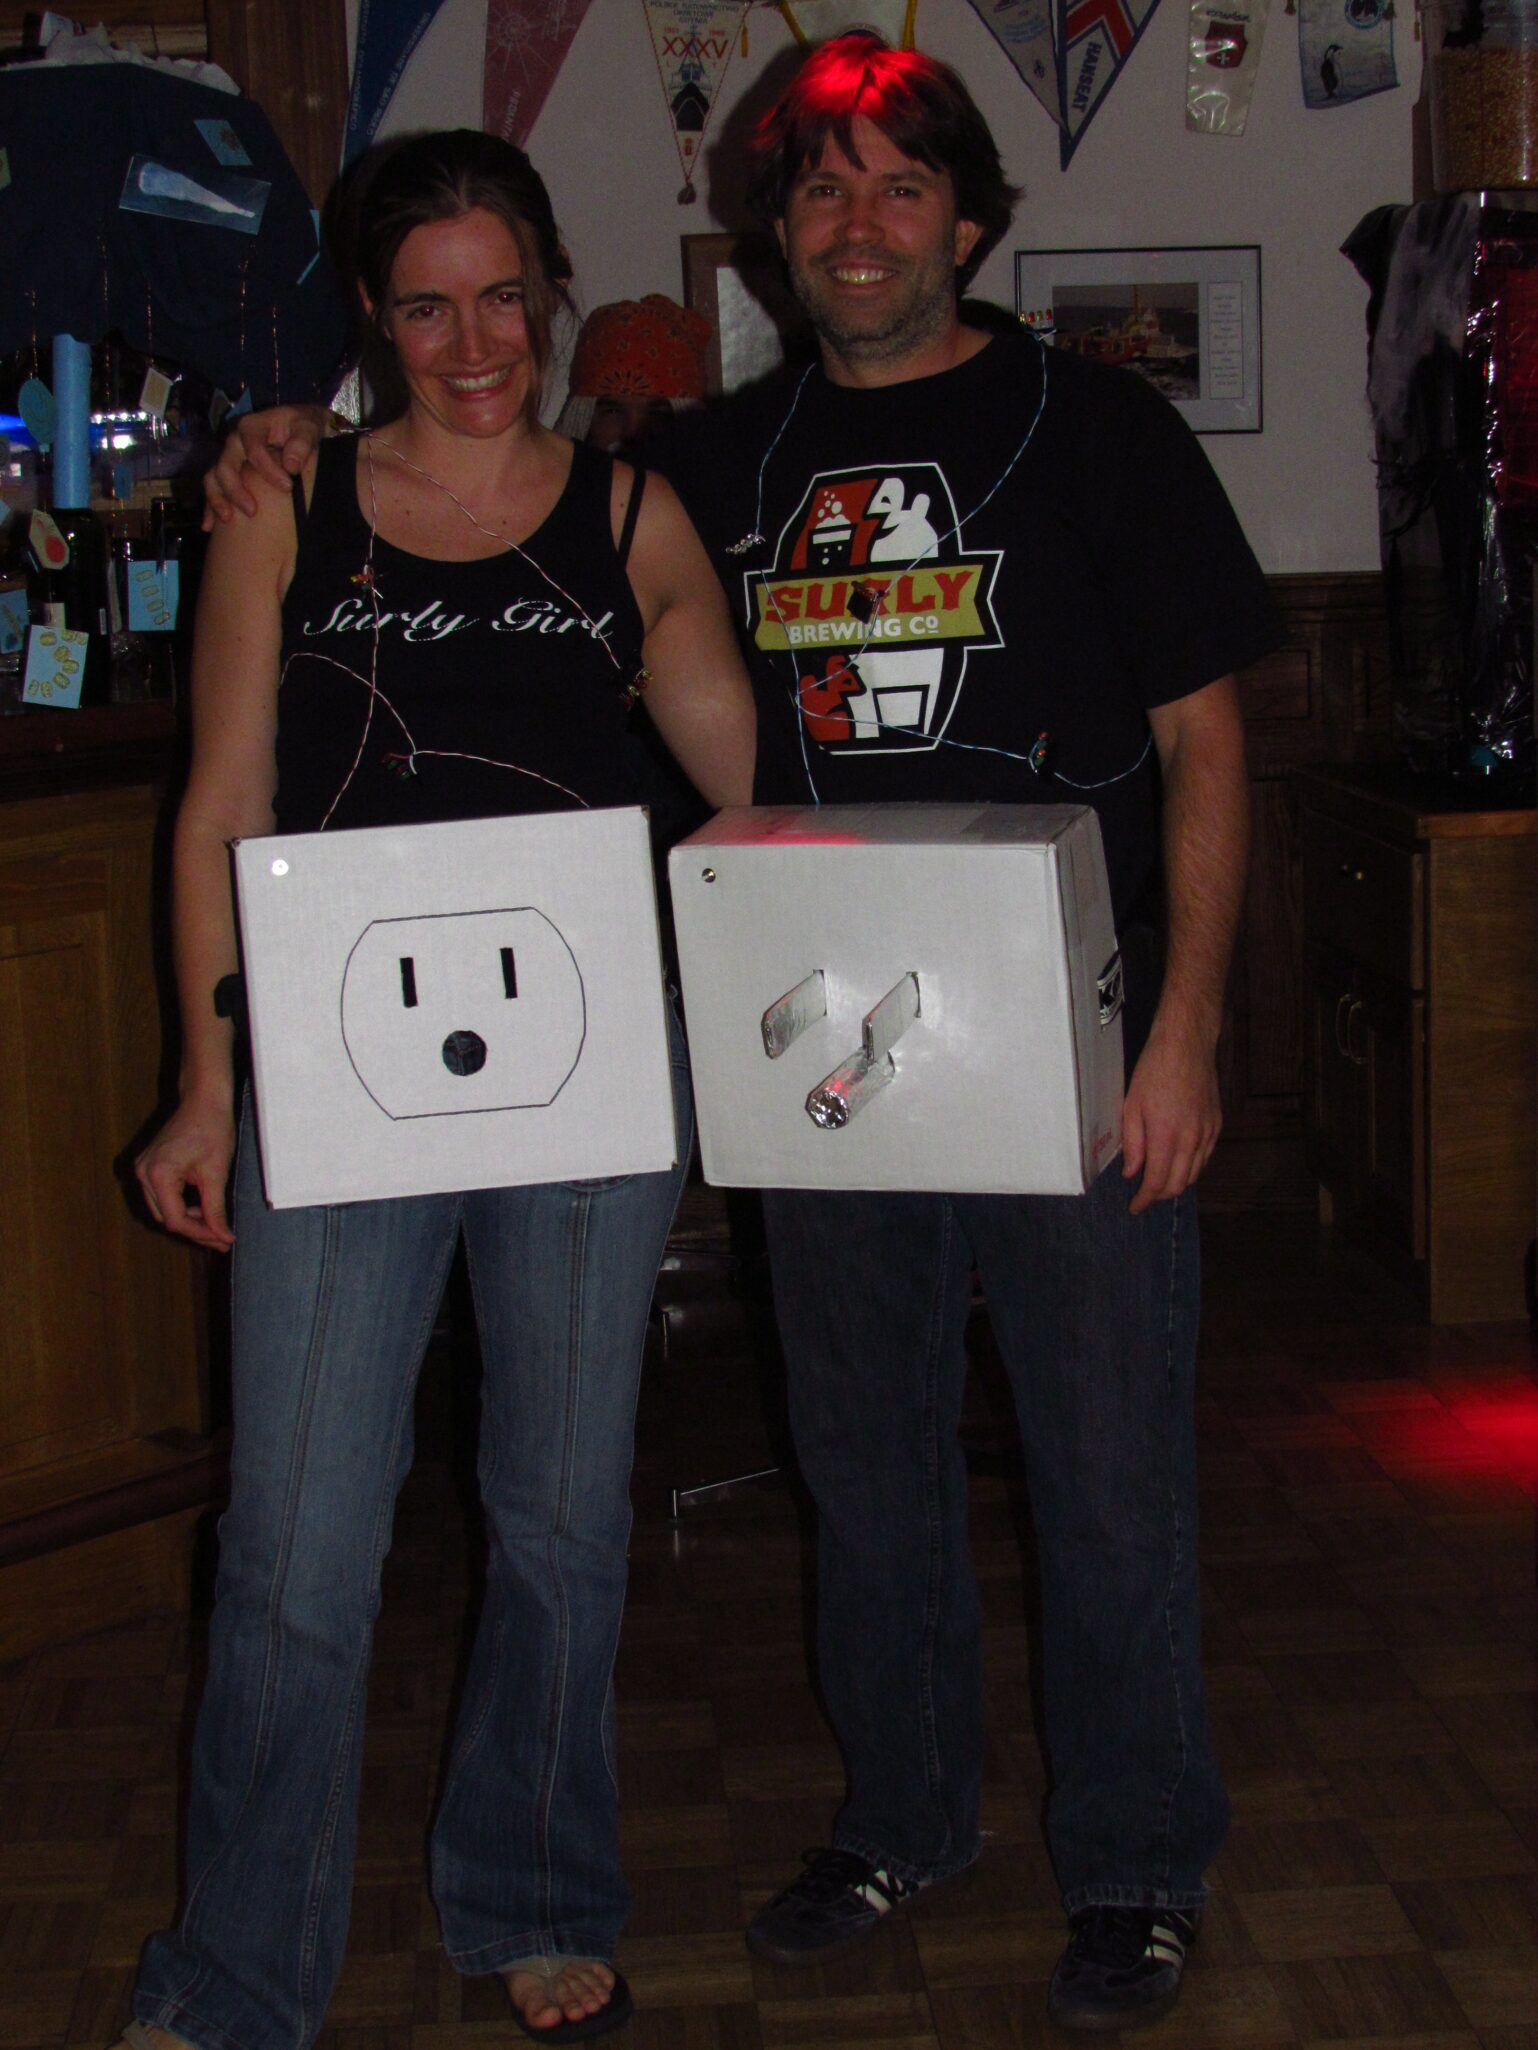 32 diy ideas for couples halloween costumes diy electric plug halloween couples costume solutioingenieria Images